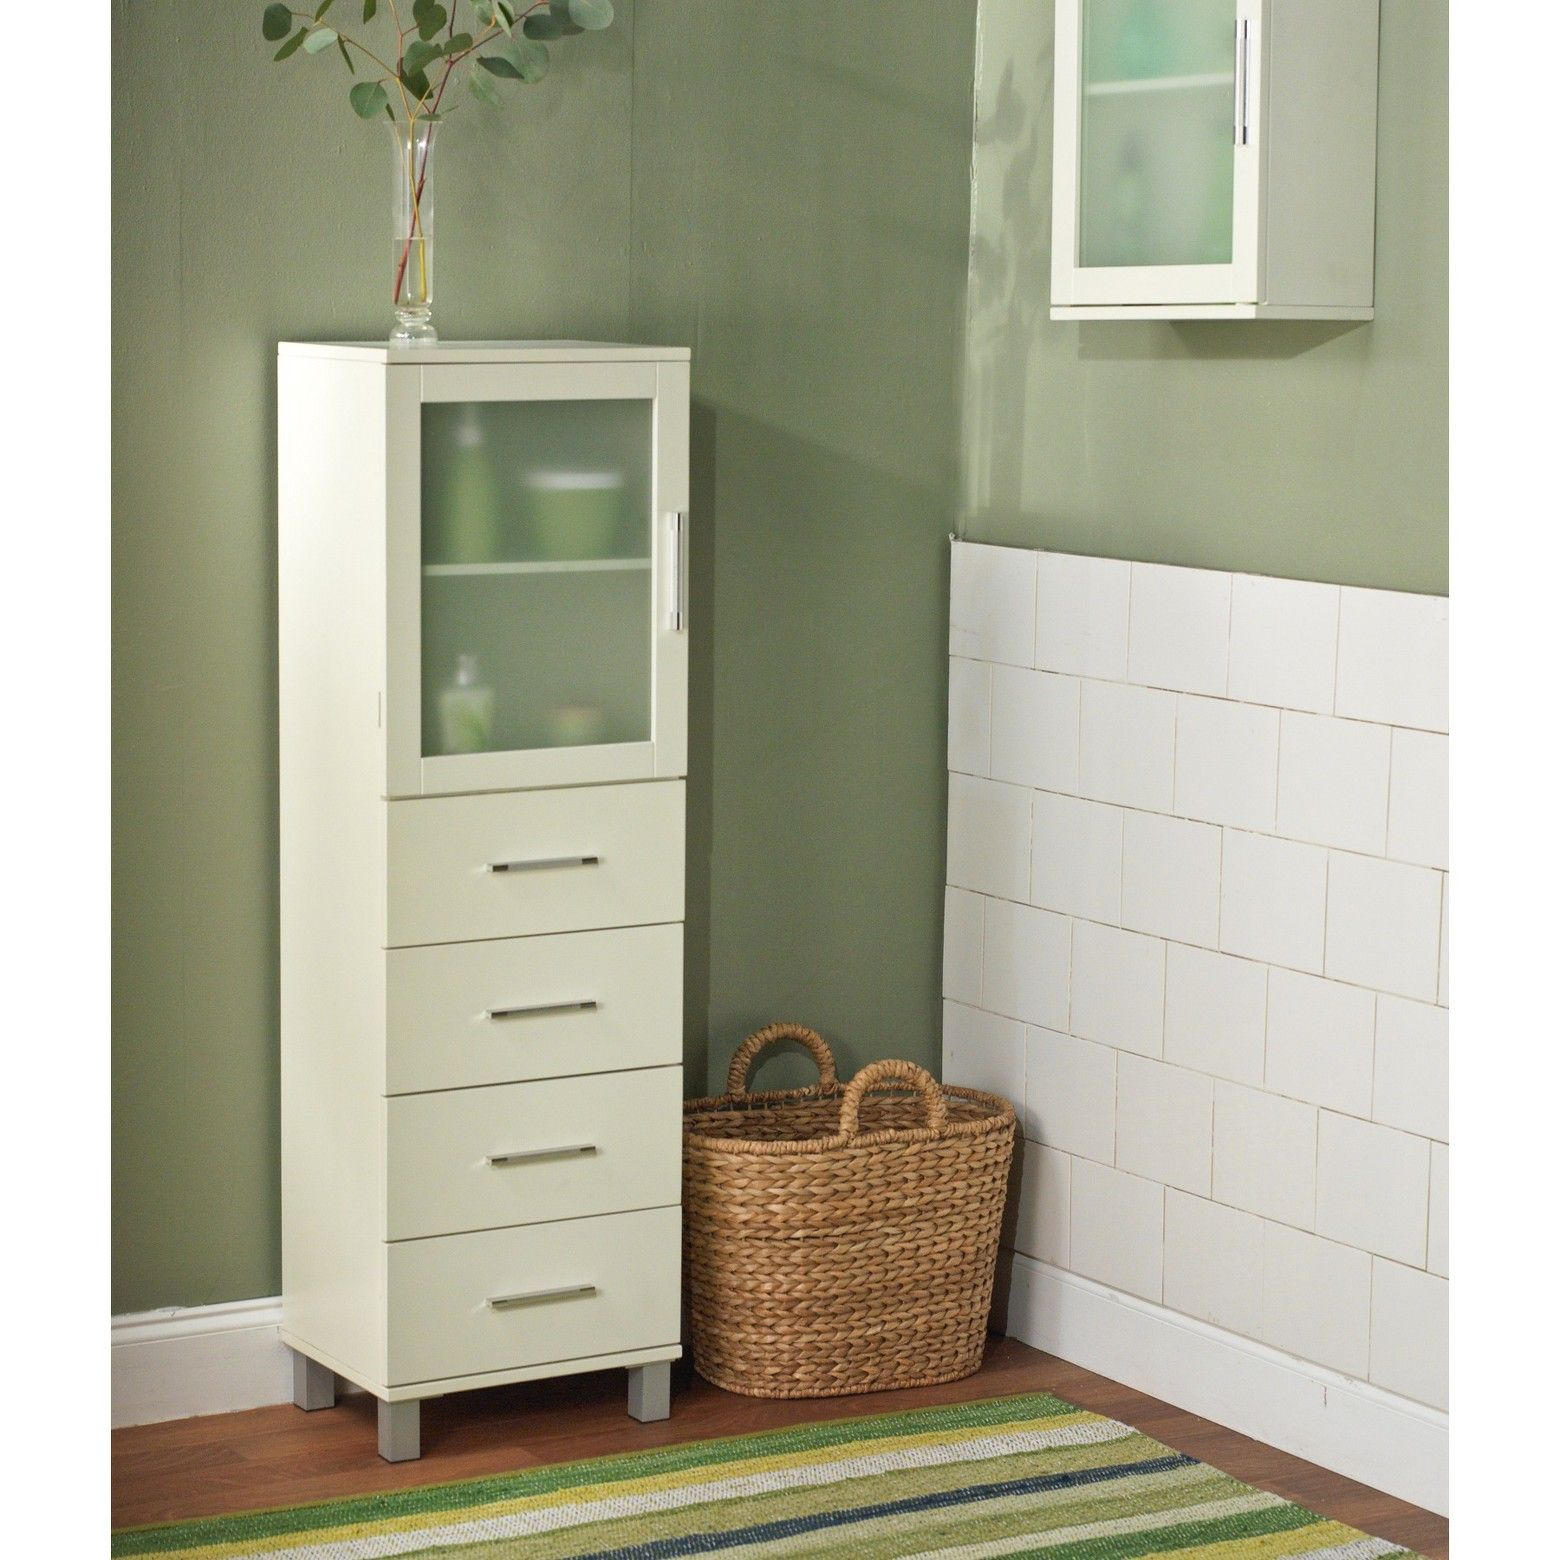 Frosted Pane 4 Drawer Linen Cabinet White - Tms